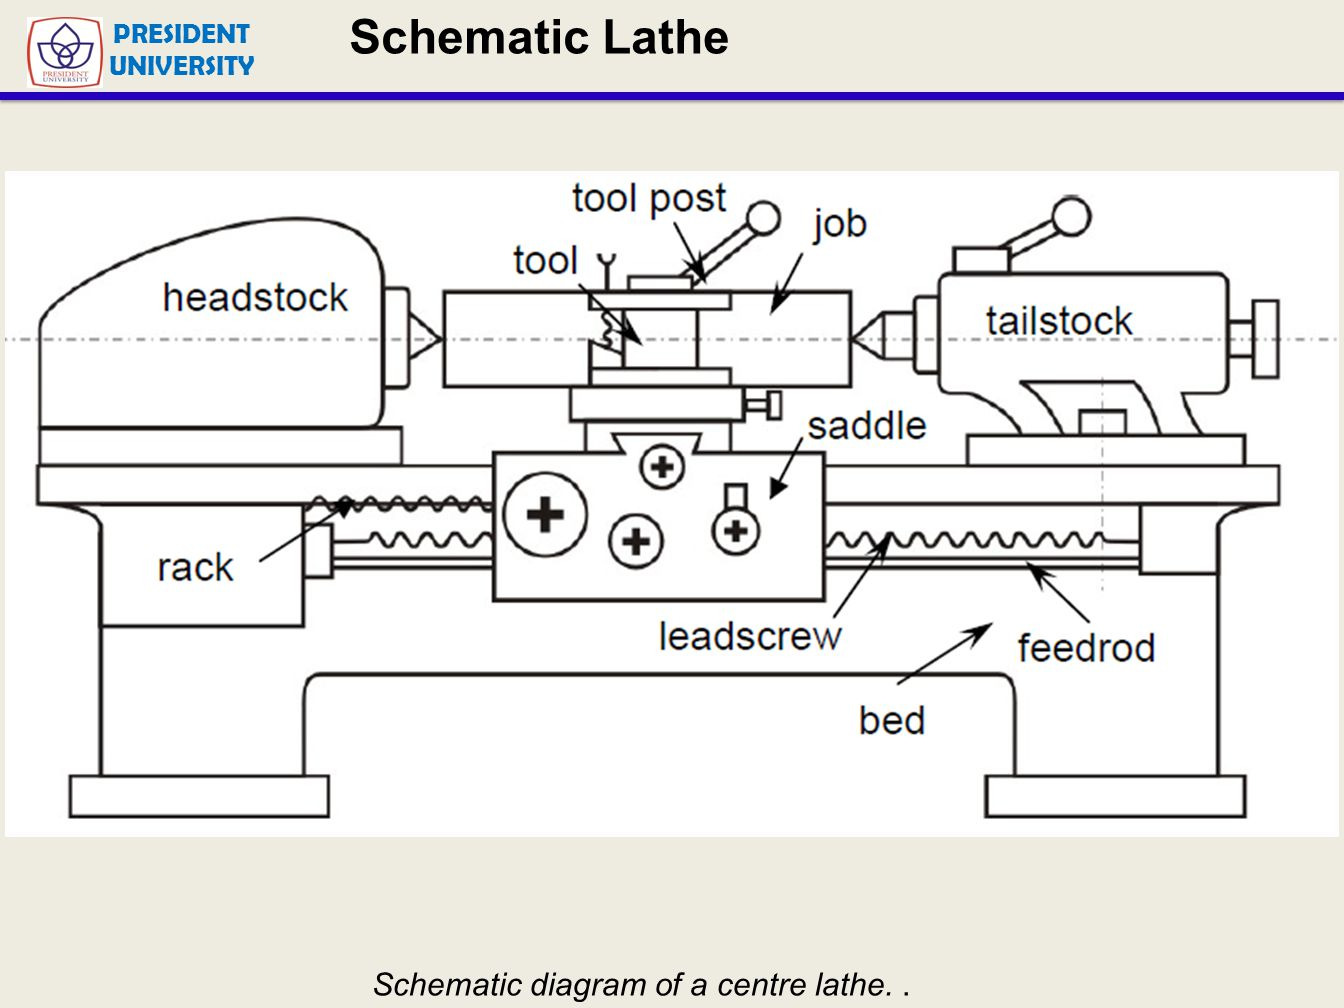 Schematic Lathe Schematic diagram of a centre lathe. .